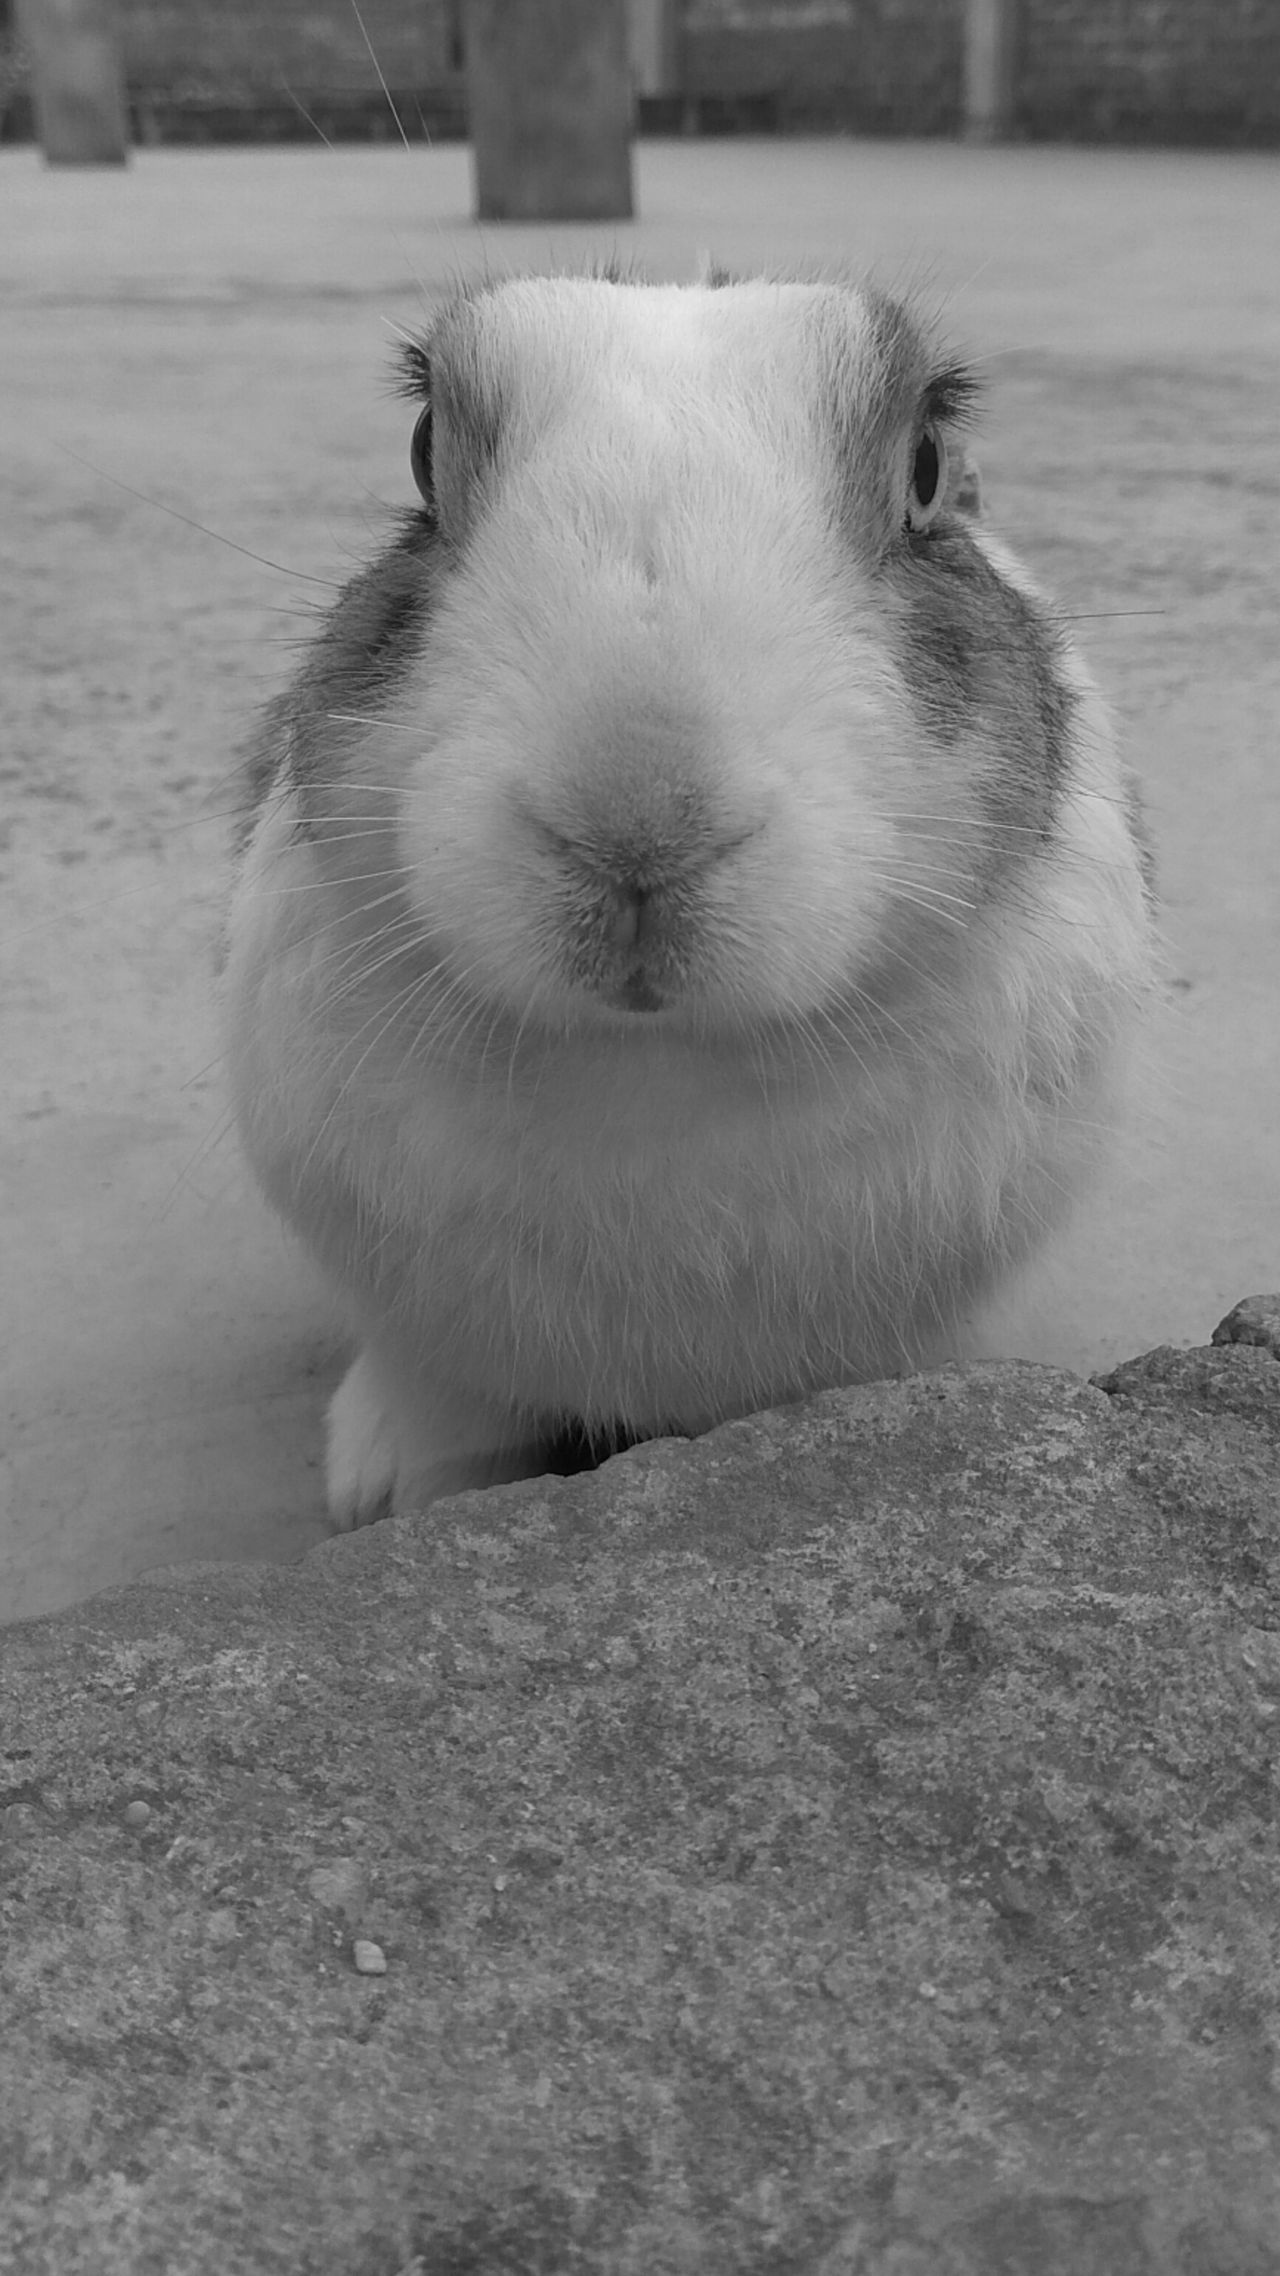 Animal Themes One Animal Domestic Animals Close-up Outdoors Nature Rabbit Pet Photo Love Good No People Day Animals In The Wild Mammal Bird